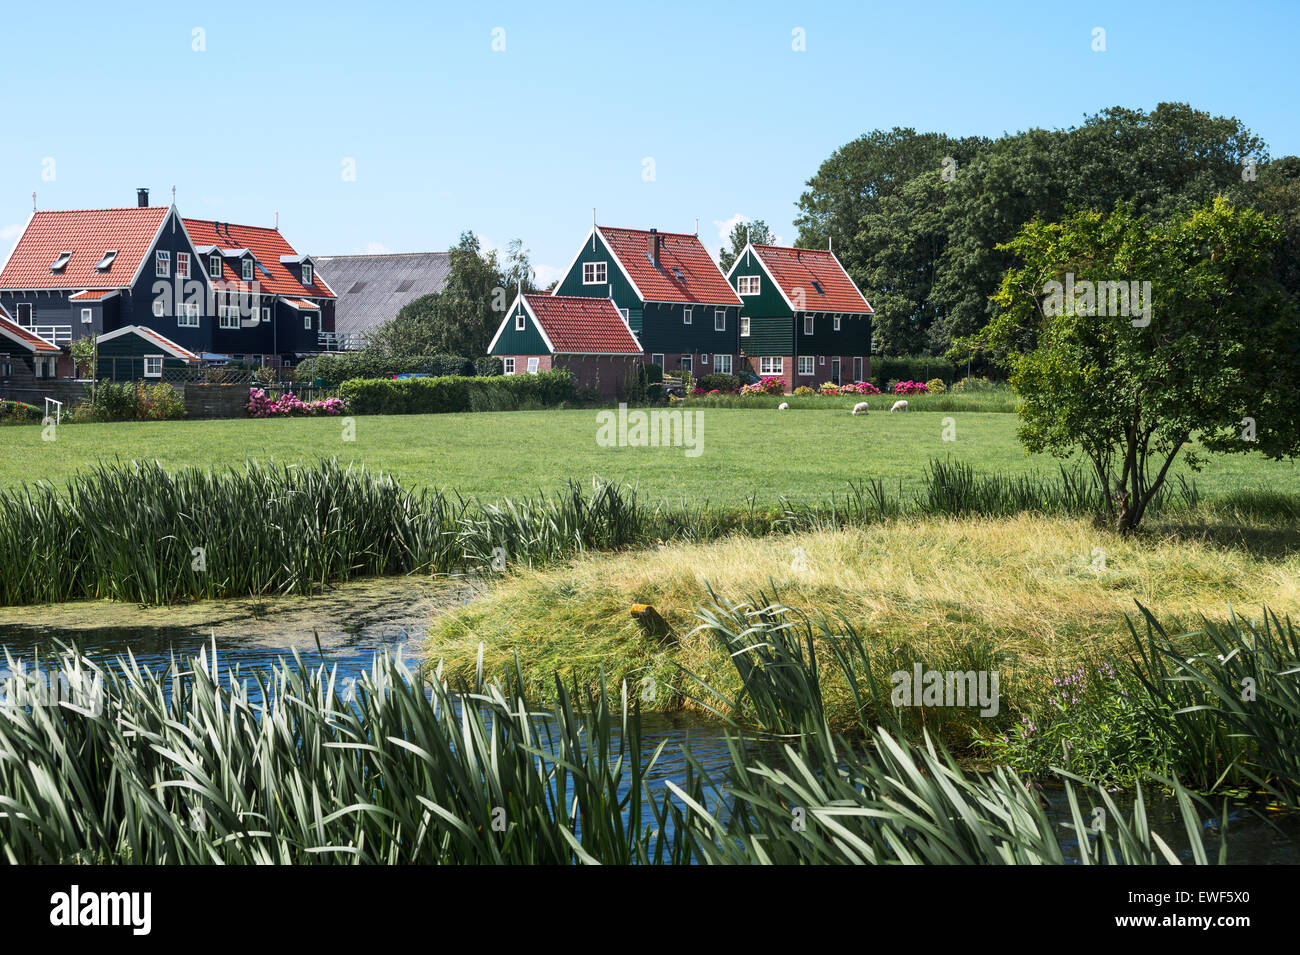 Amsterdam, Waterland district, Marken, typical country houses near the village. - Stock Image